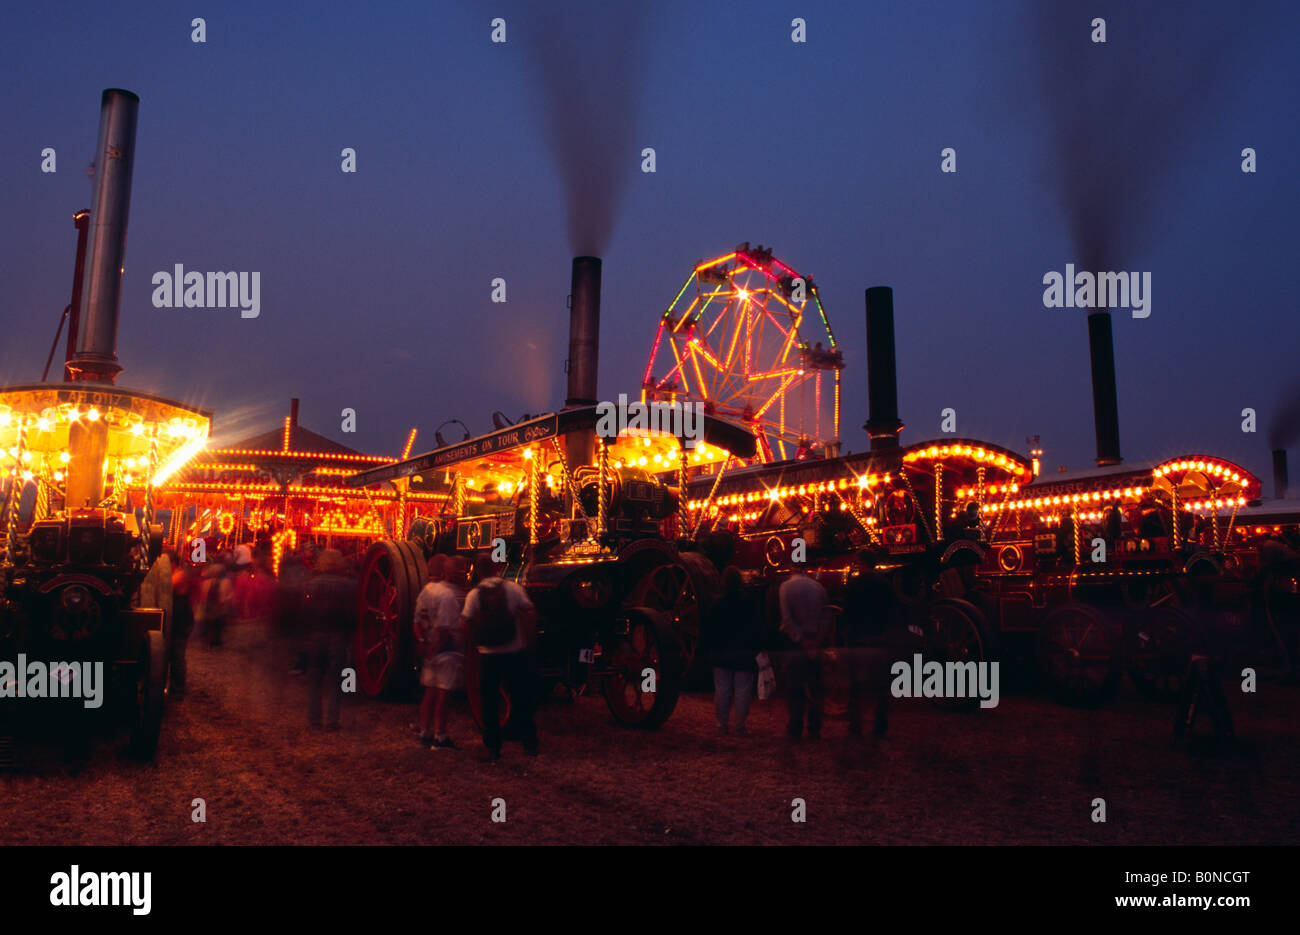 Showmans engines powering the Great Dorset Steam Fair 2004 - Stock Image